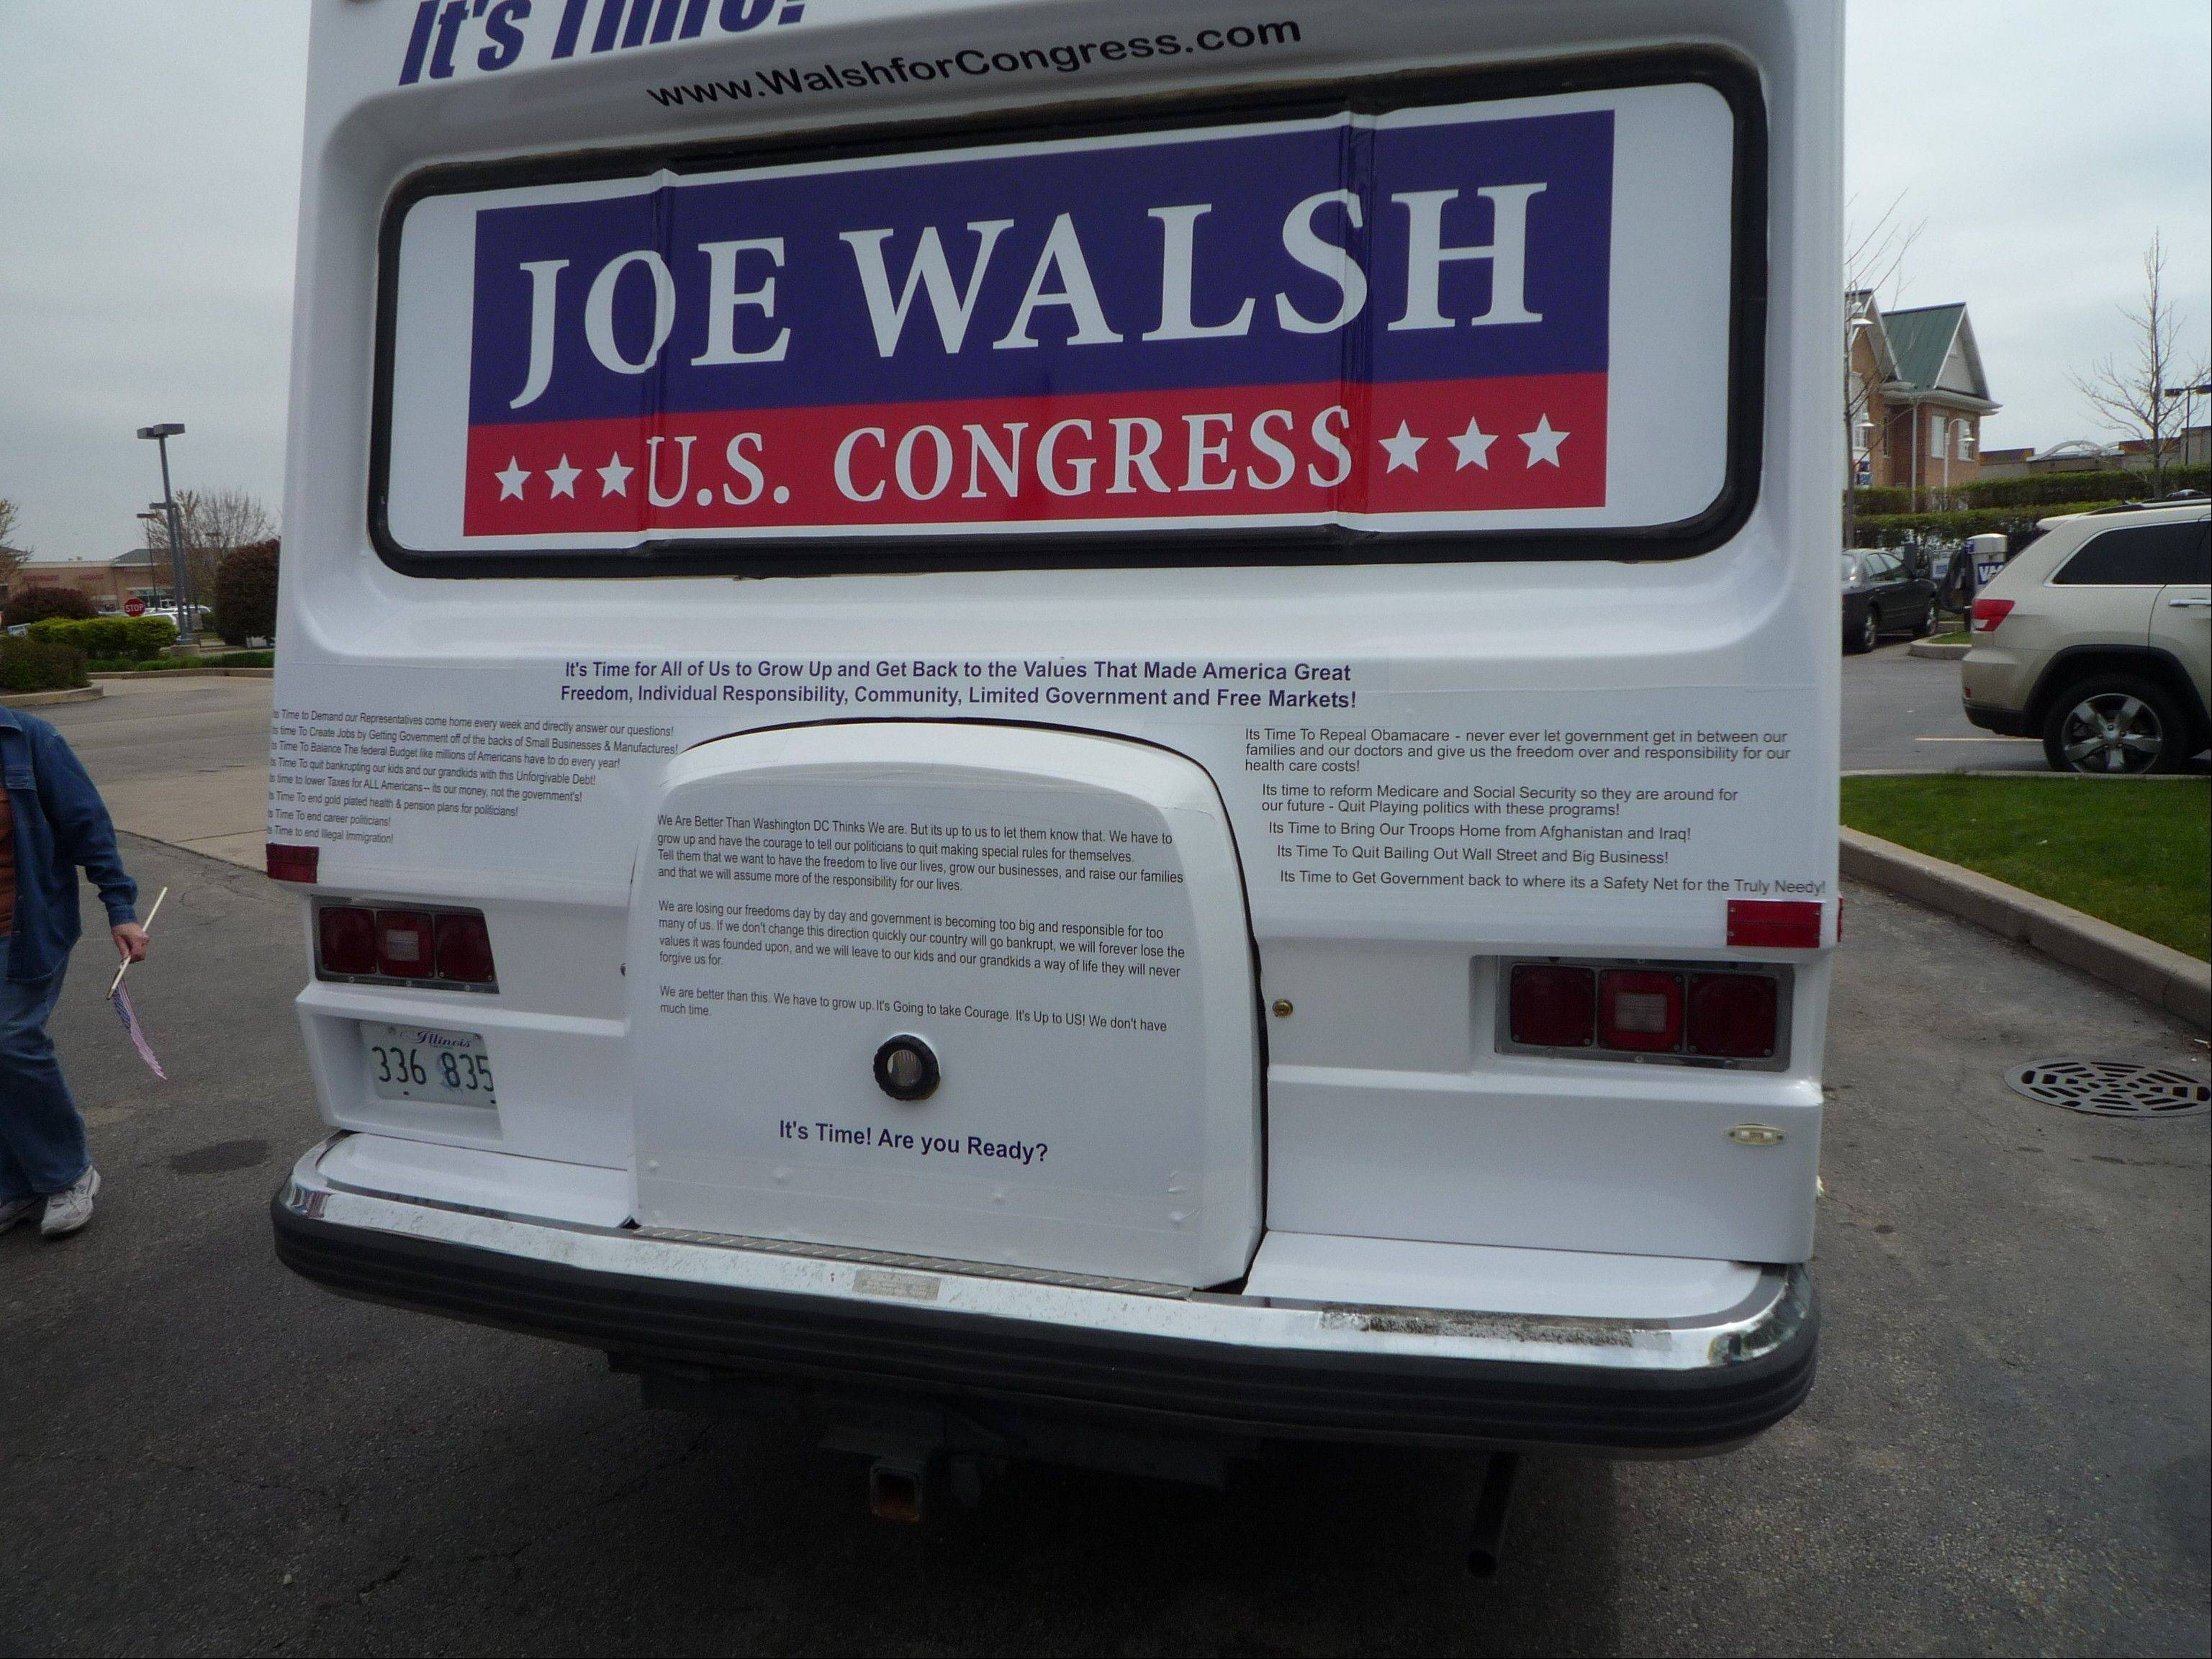 Many of the beliefs of Congressman Joe Walsh are printed on the rear of the campaign motorhome the candidate unveiled Saturday at a Huntley Tea Party rally.